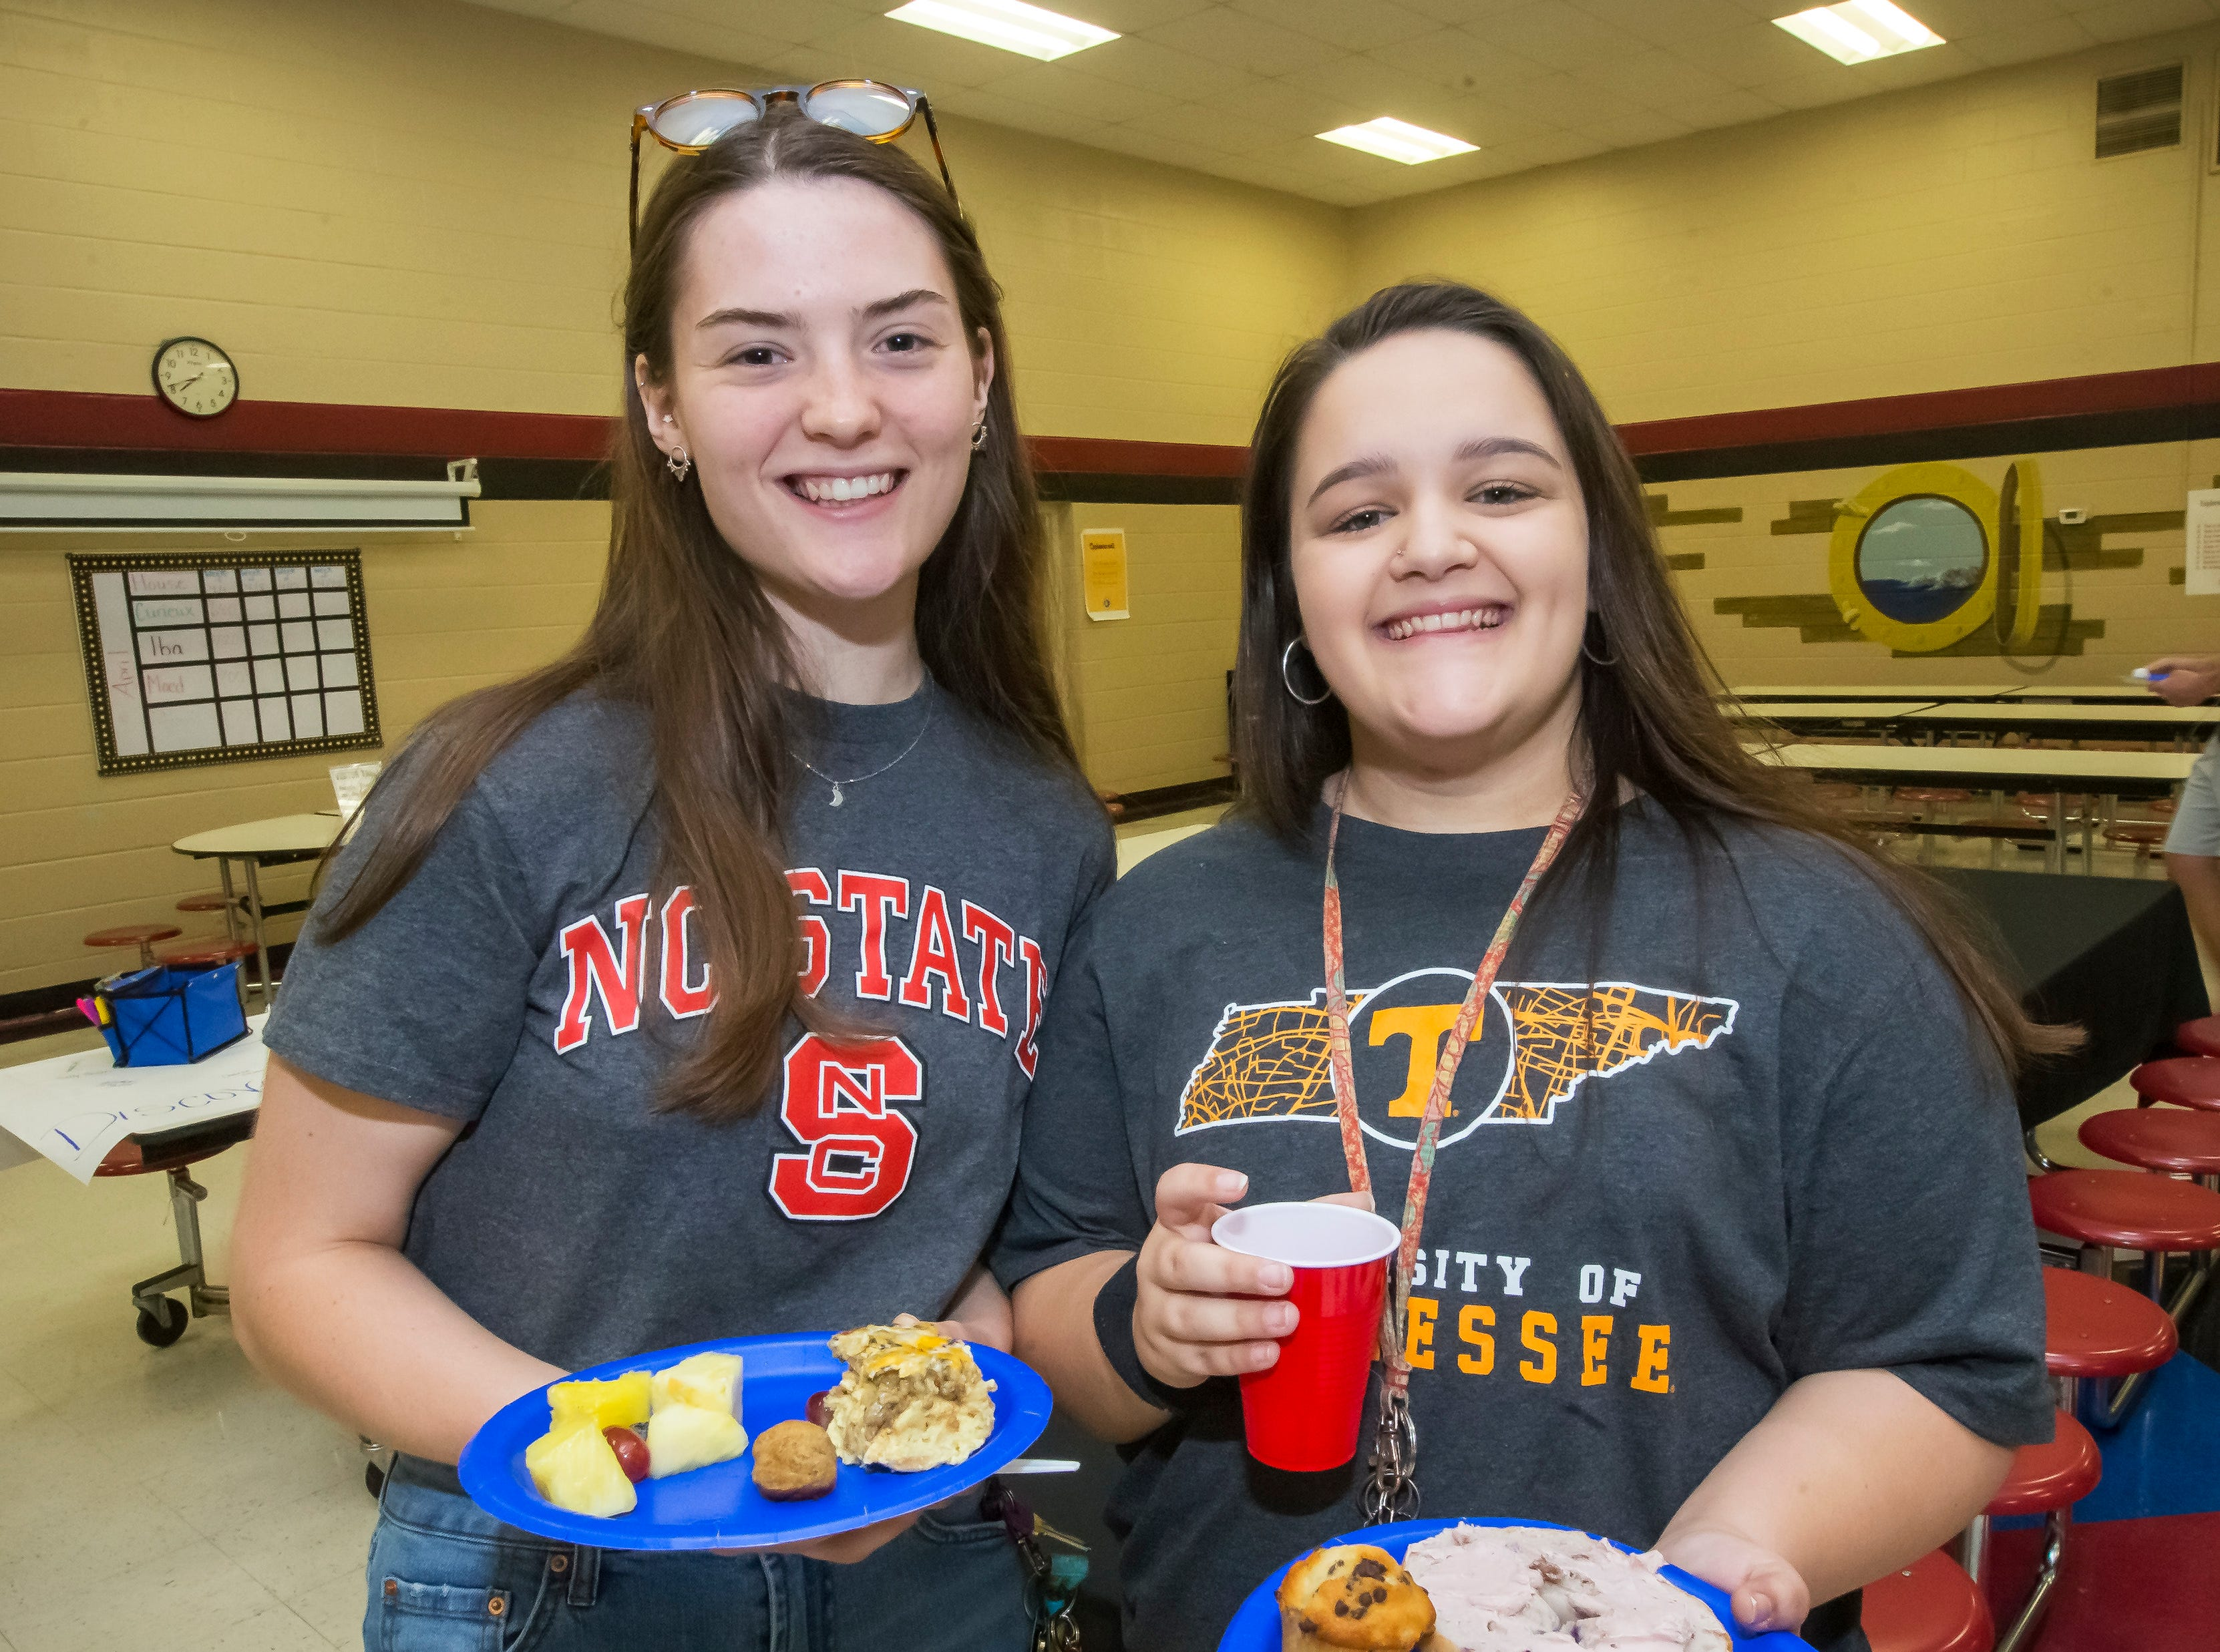 Zoe Chavis and Abby Cornelison joined other former students at Discovery School at Bellwood in the Senior Walk Friday, May 3, 2019.